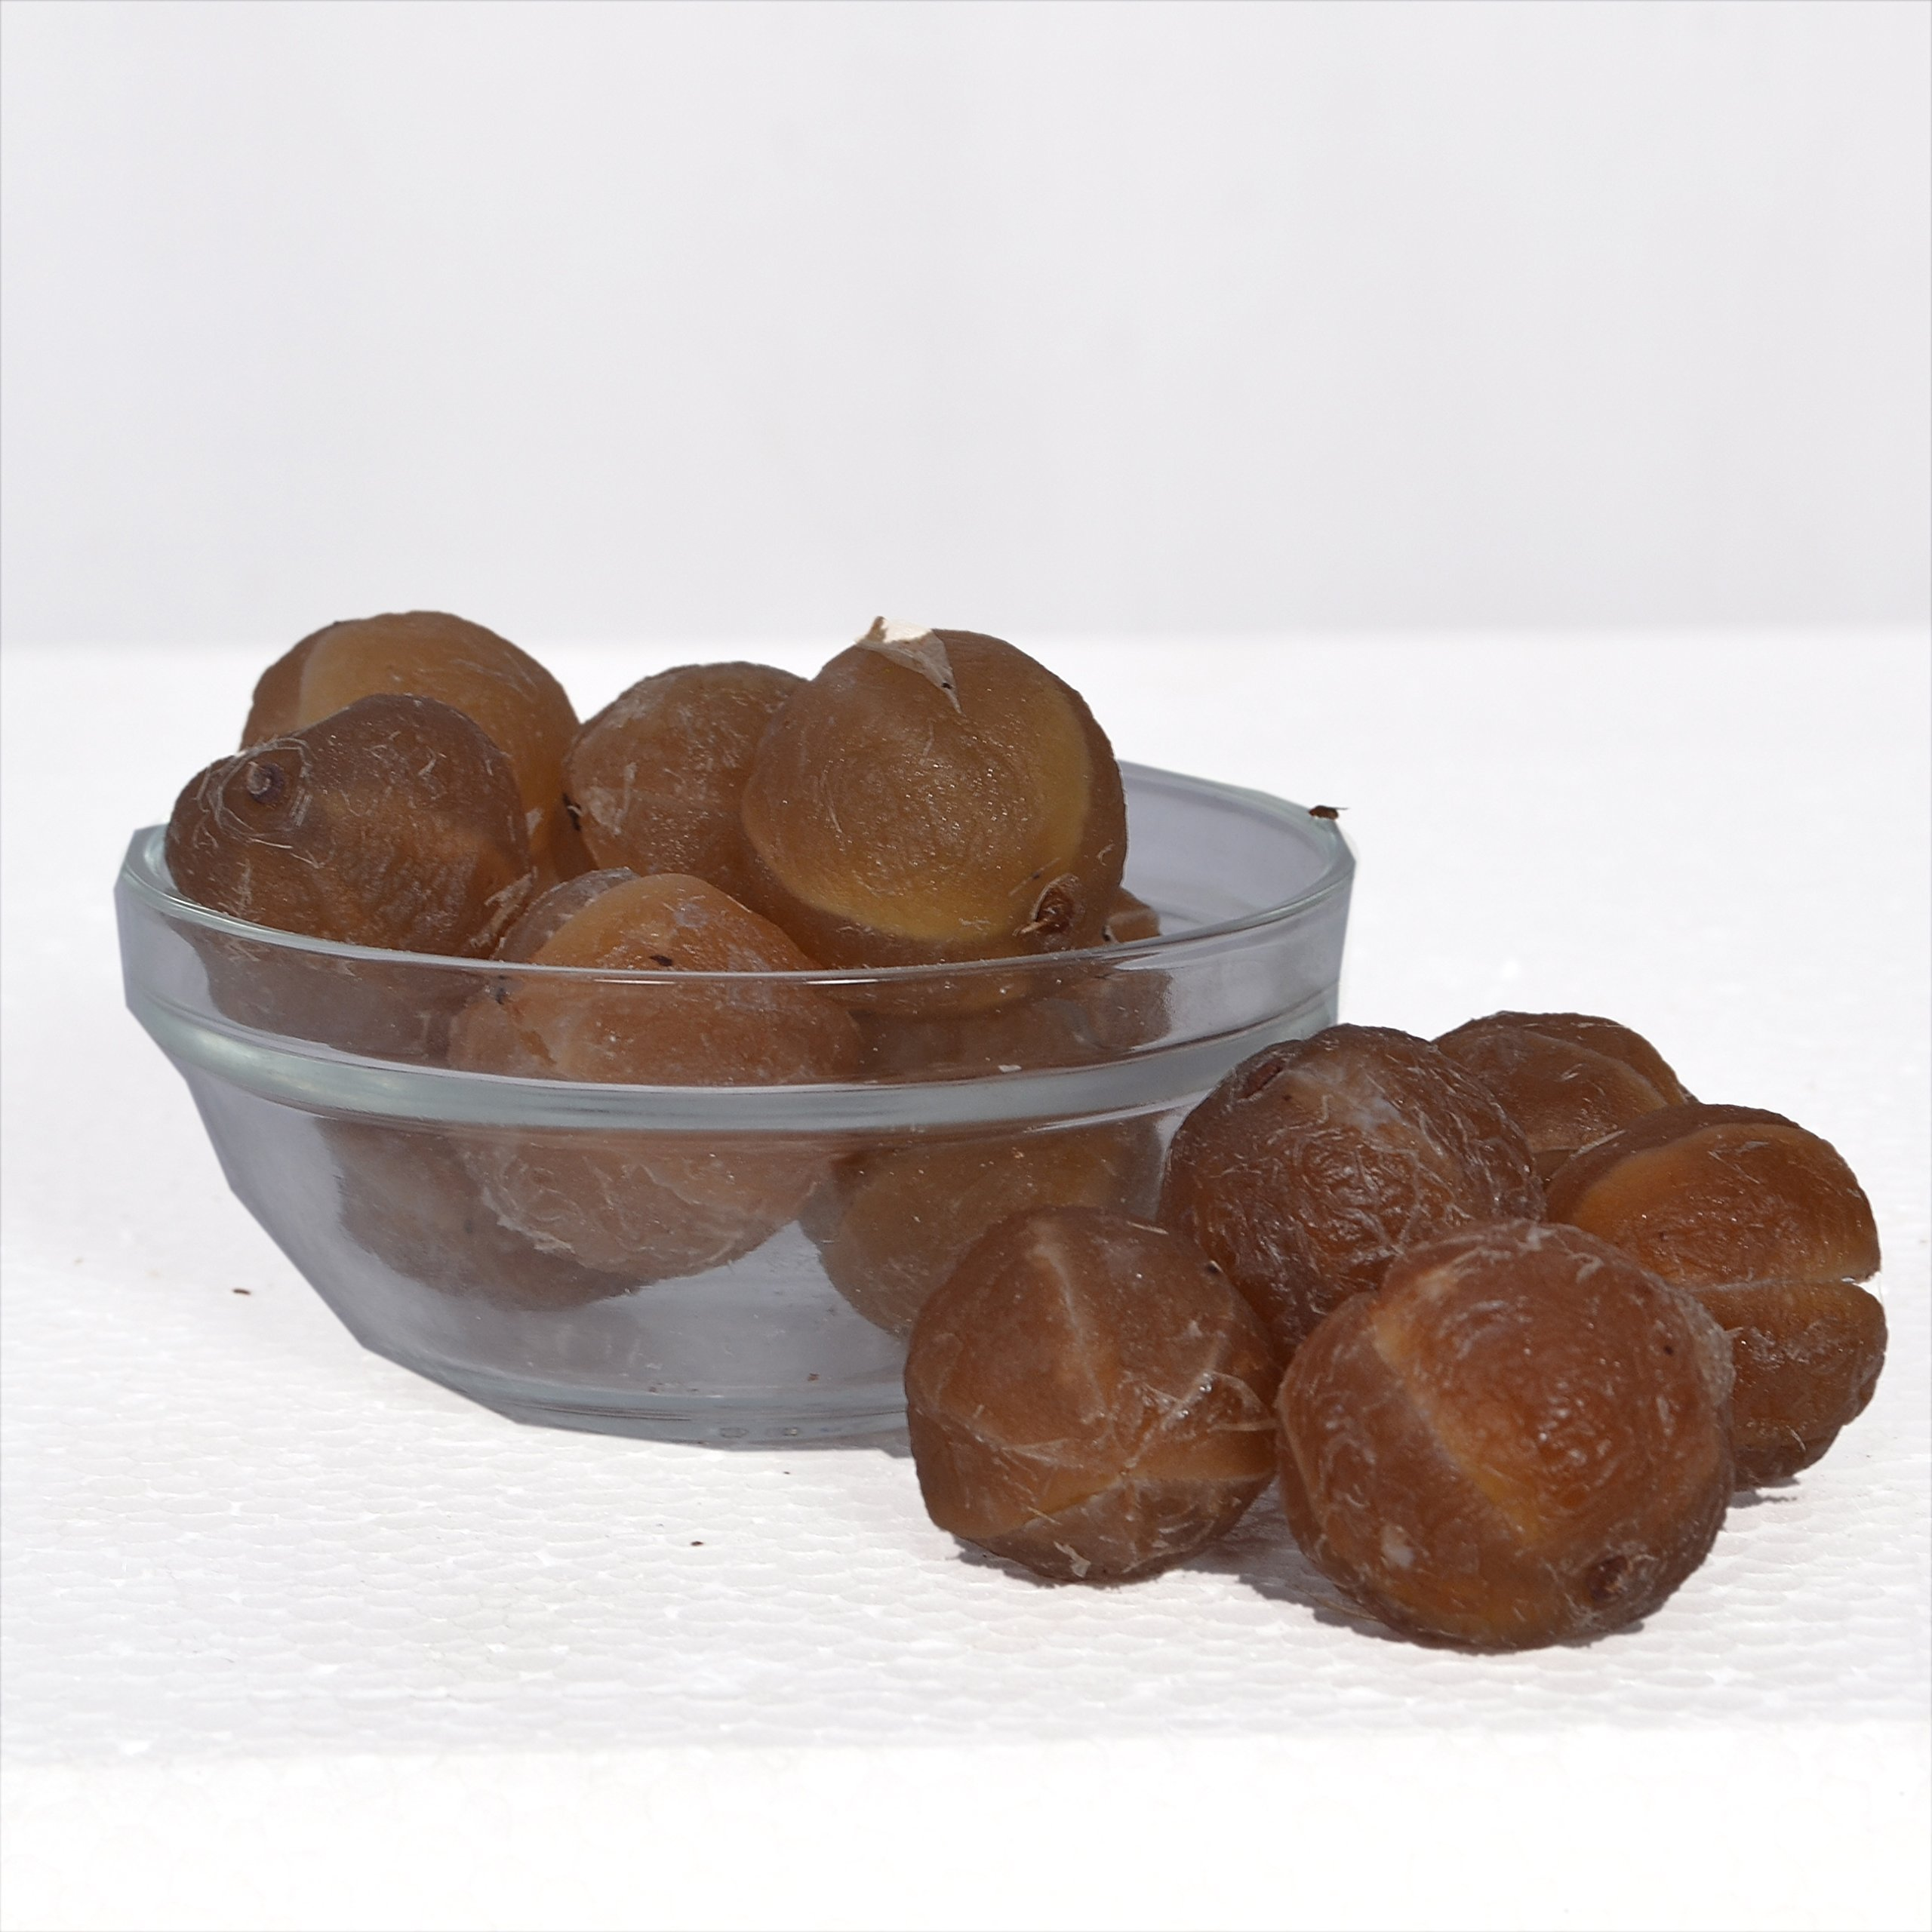 Leeve Dry Fruits Sweet Whole Amla - 400 Gms by Leeve Dry Fruits (Image #3)